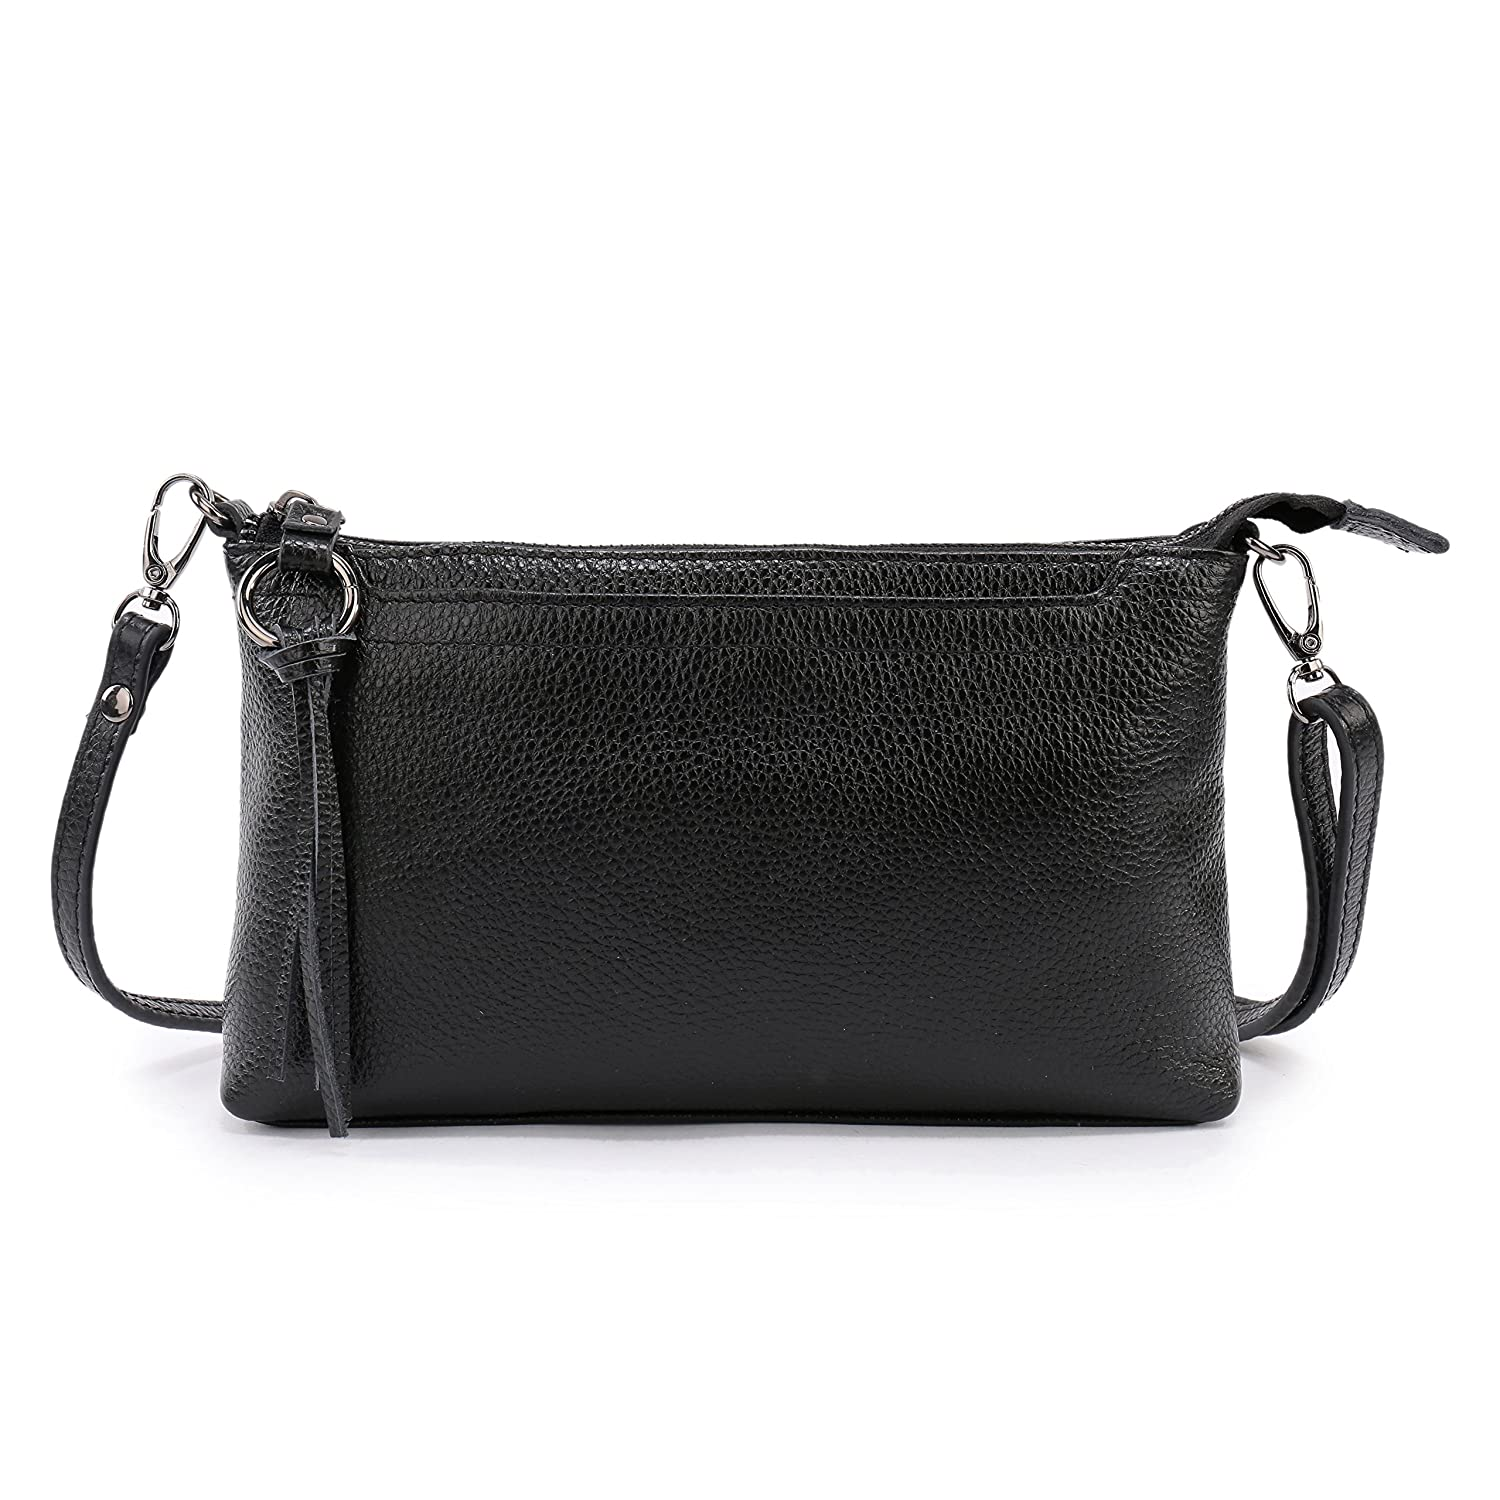 8facedcd582c Amazon.com  Lanvera Women s Crossbody Shoulder Bag Genuine Leather Zipper  Clutch Purse Wallet Handbag (Black)  Shoes